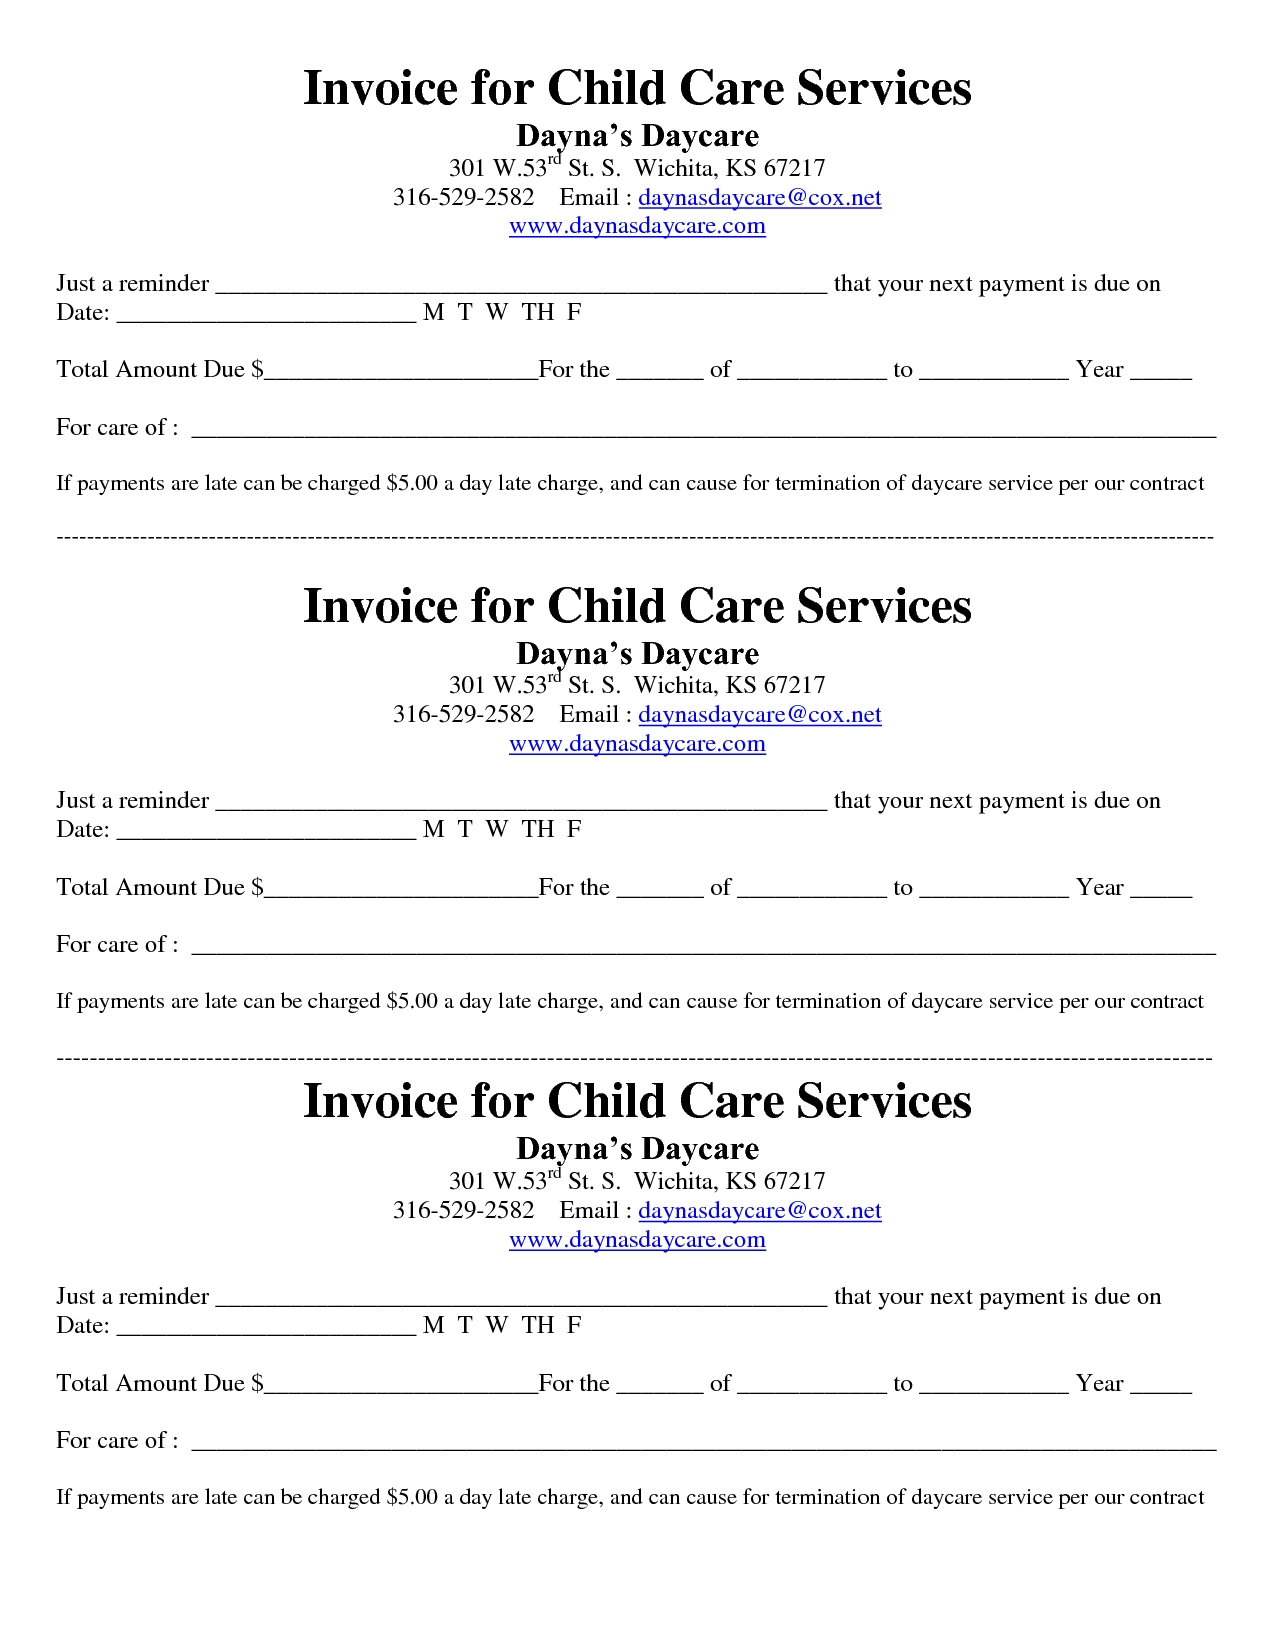 child care receipt template free image gallery   photonesta daycare invoice template